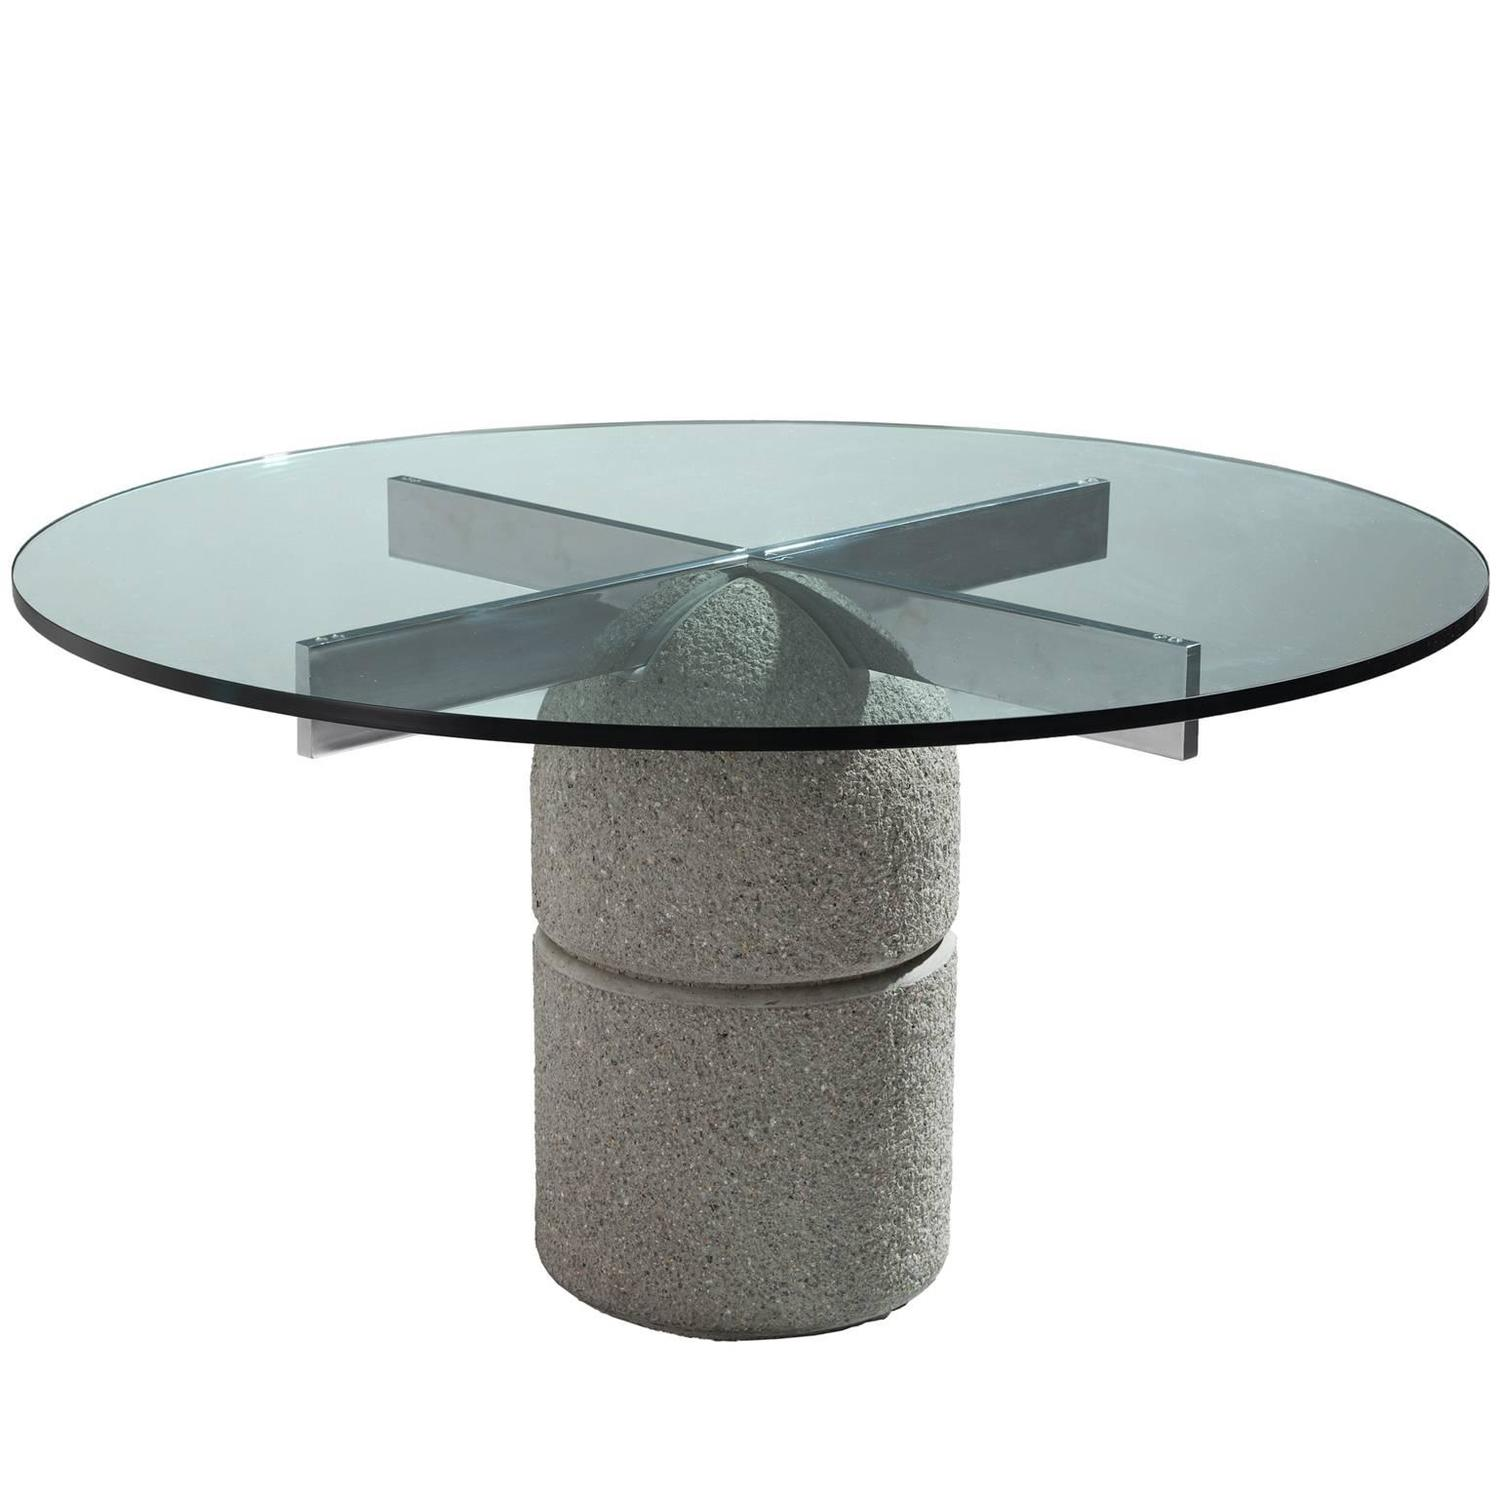 Giovanni fredi Round Paracarro Dining Table for Saporiti at